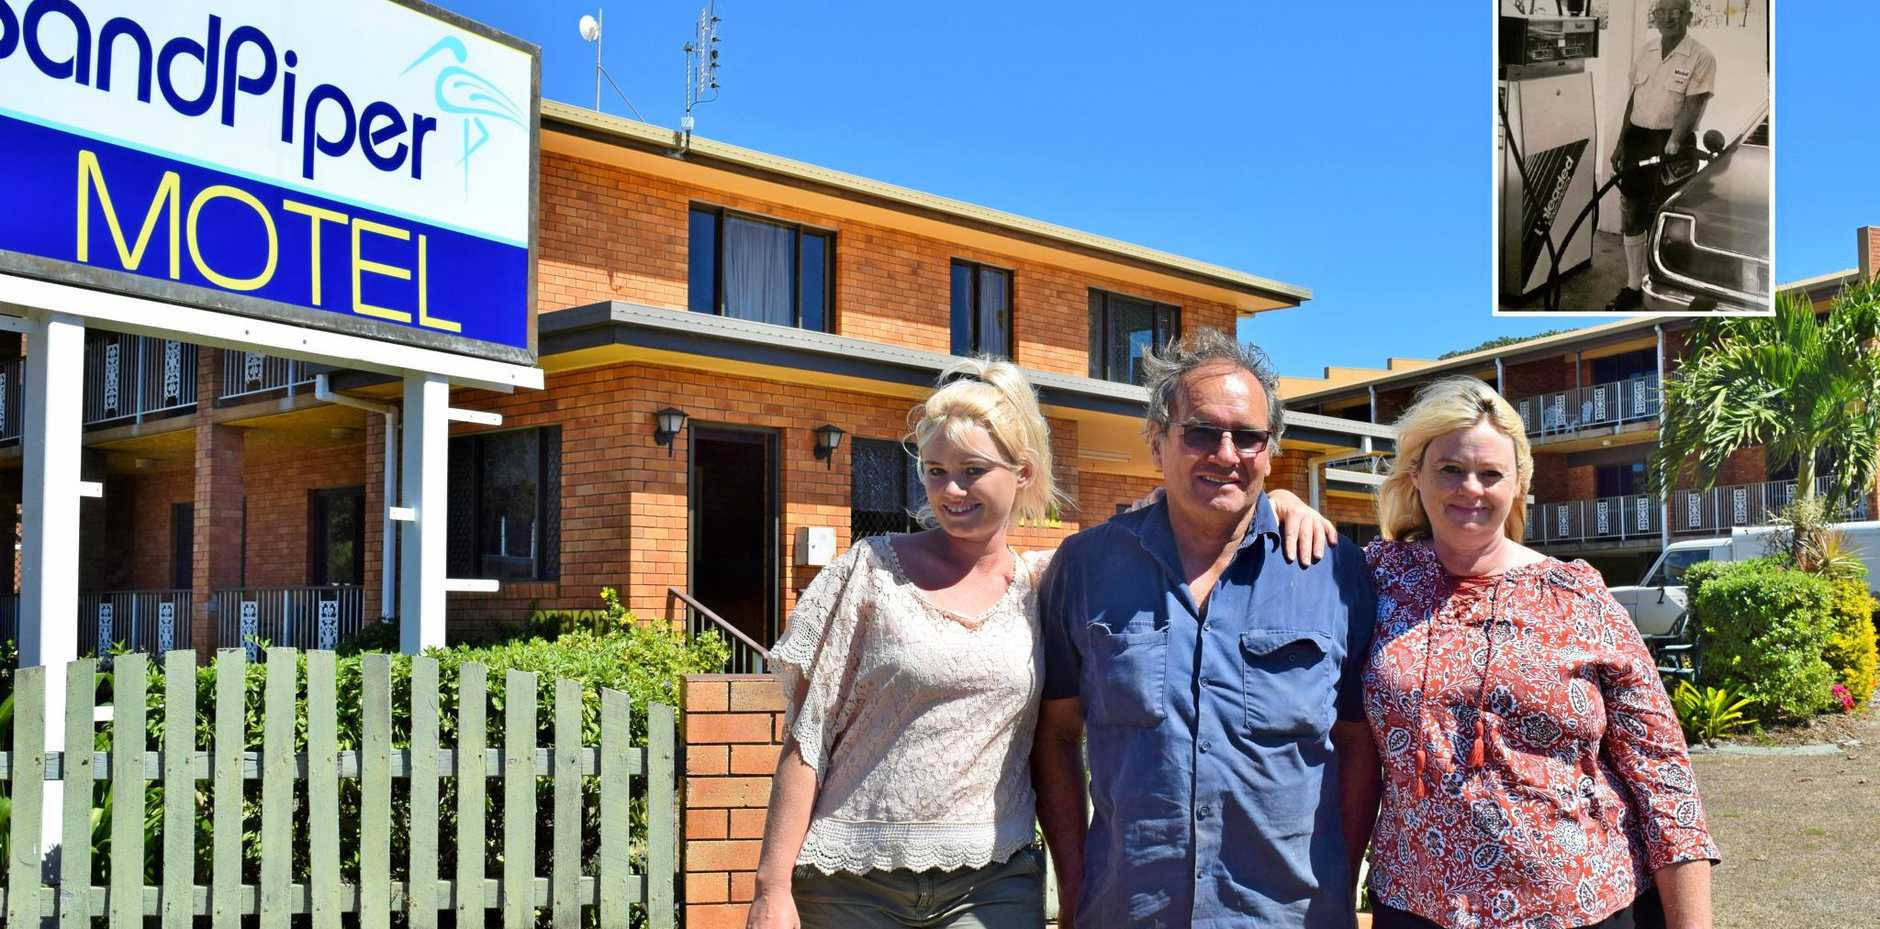 FAMILY BUSINESS: Liana Welsh, Kevin Jenkins and Gaynor Jenkins, the new owners of Sandpiper Motel. It was previously owned by Owen, Kevin's dad.